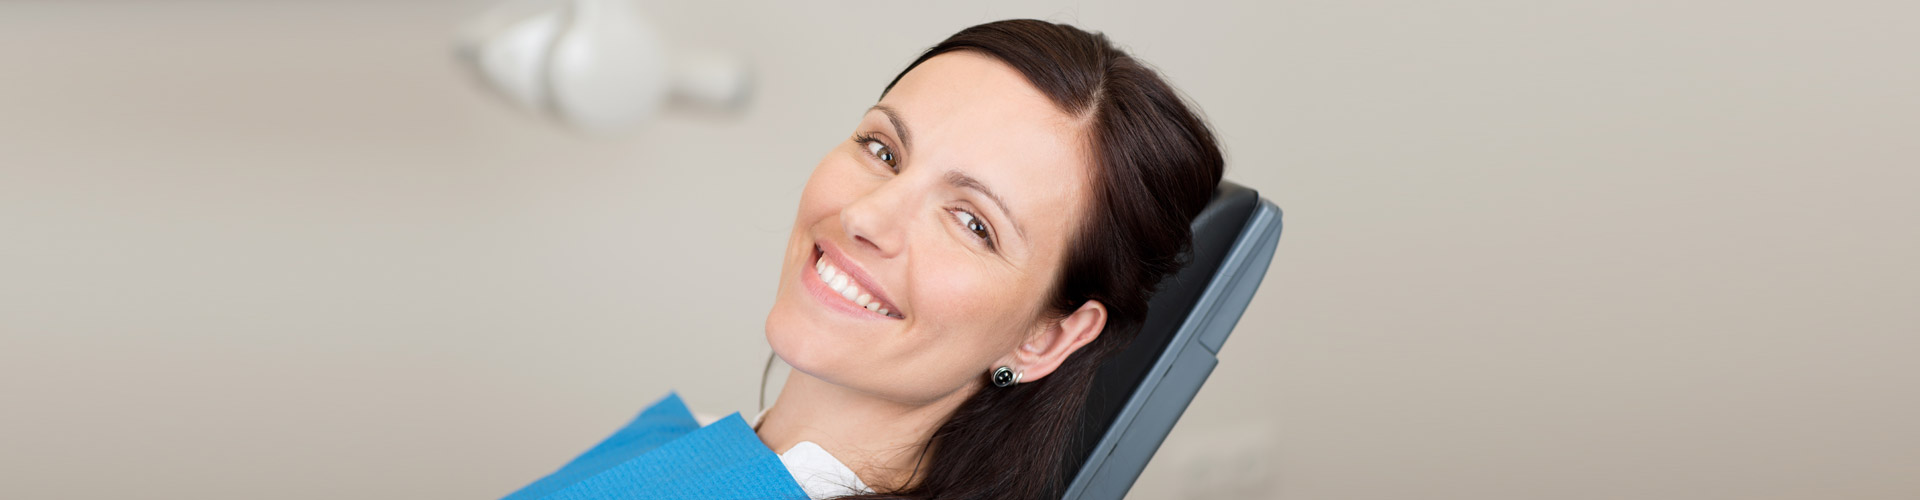 Oral Pathology | Dental Infection | Oral Surgery Associates